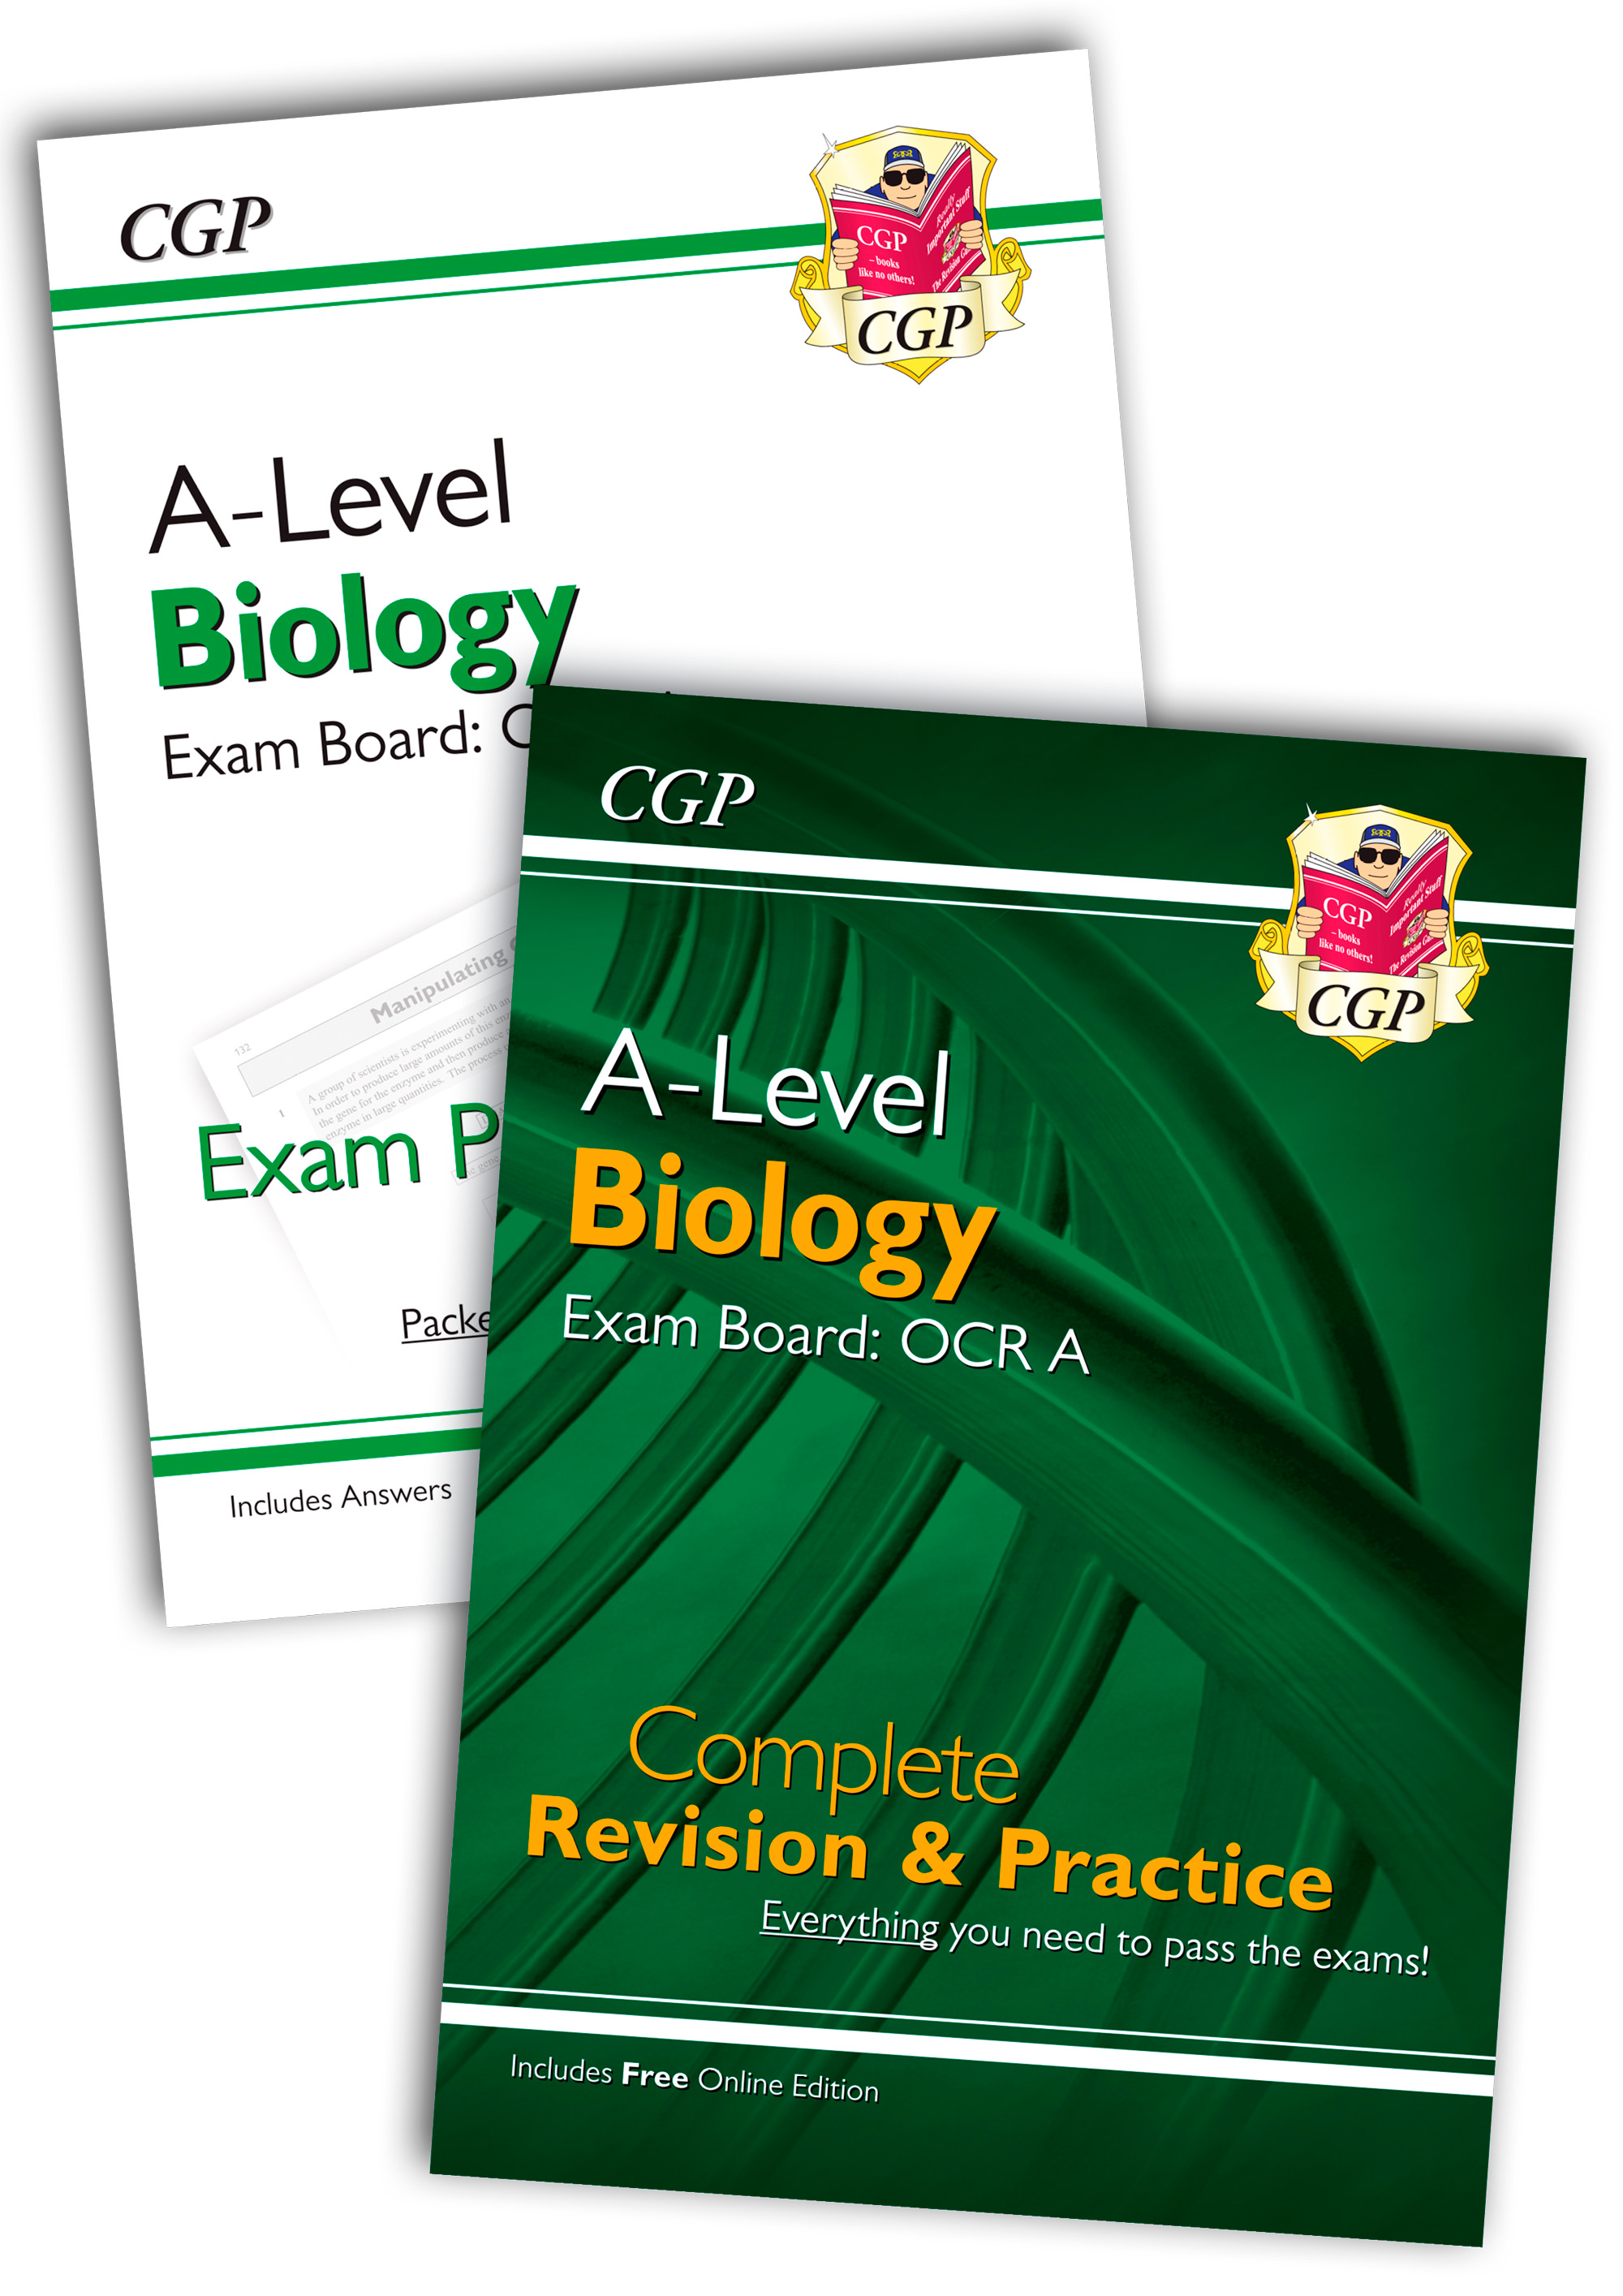 BRARQB71 - New Complete Revision and Exam Practice A-Level Biology Bundle: OCR A Year 1 & 2